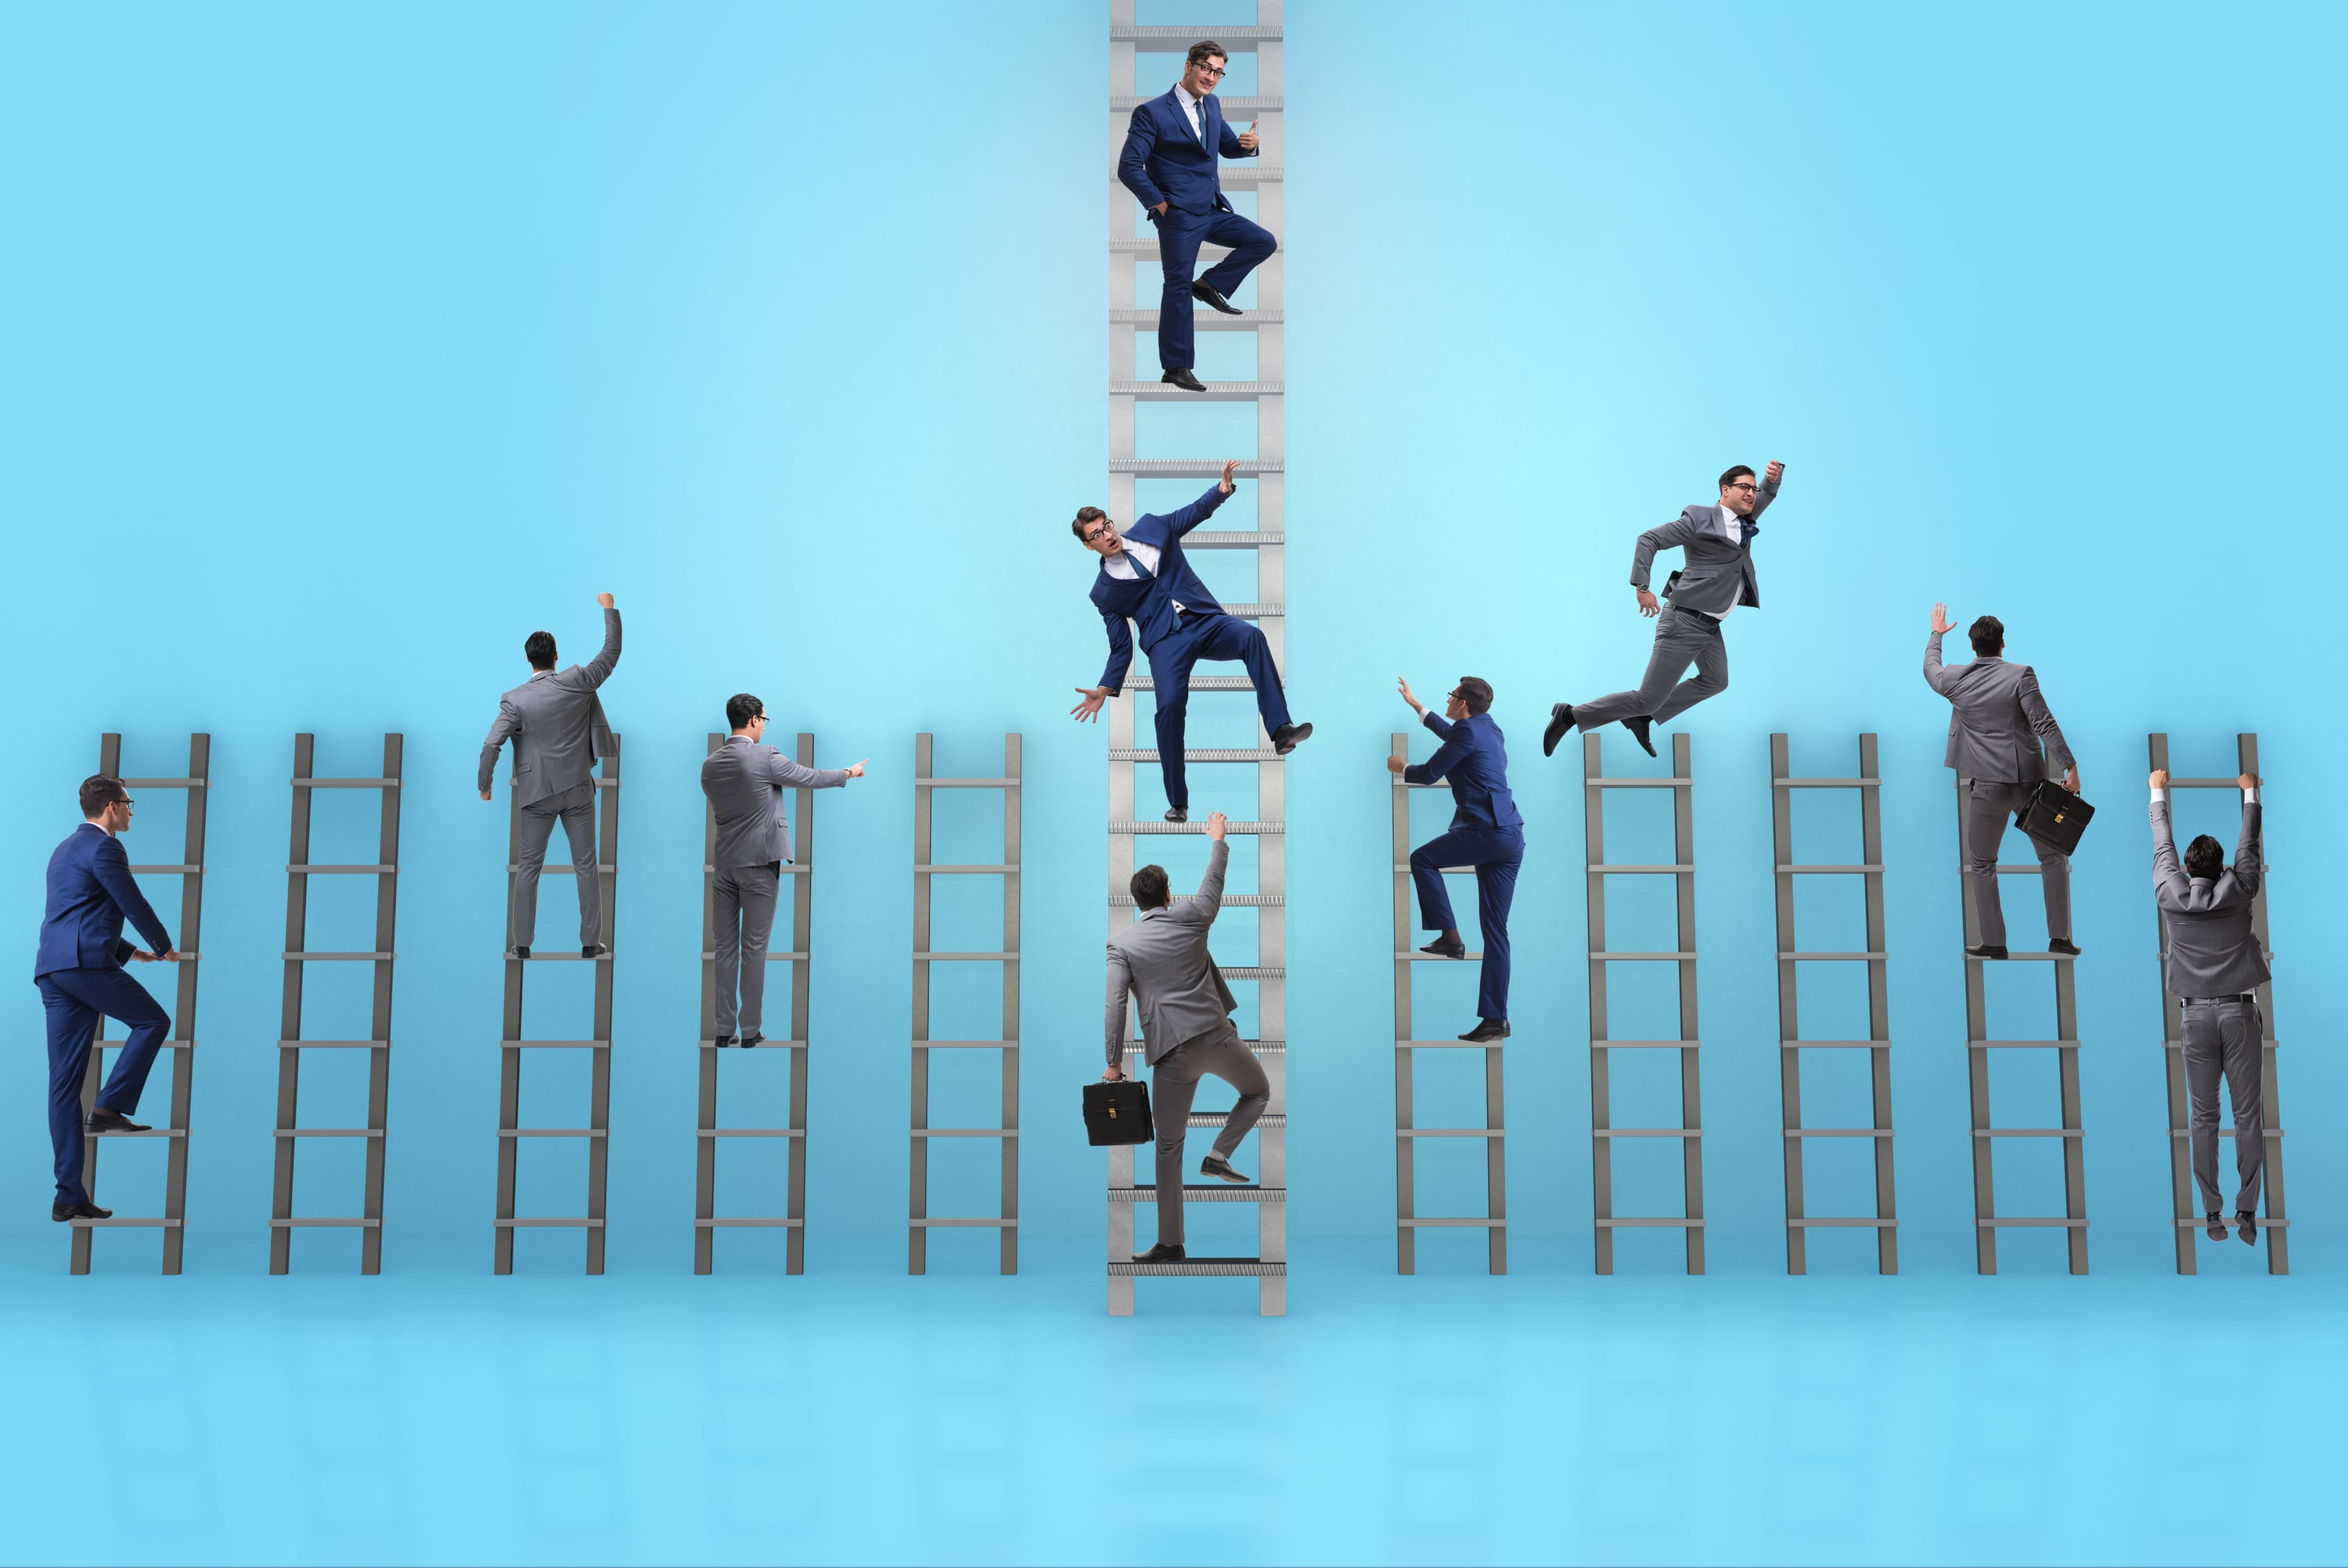 How to Climb the Corporate Ladder – 11 Keys to Career Success